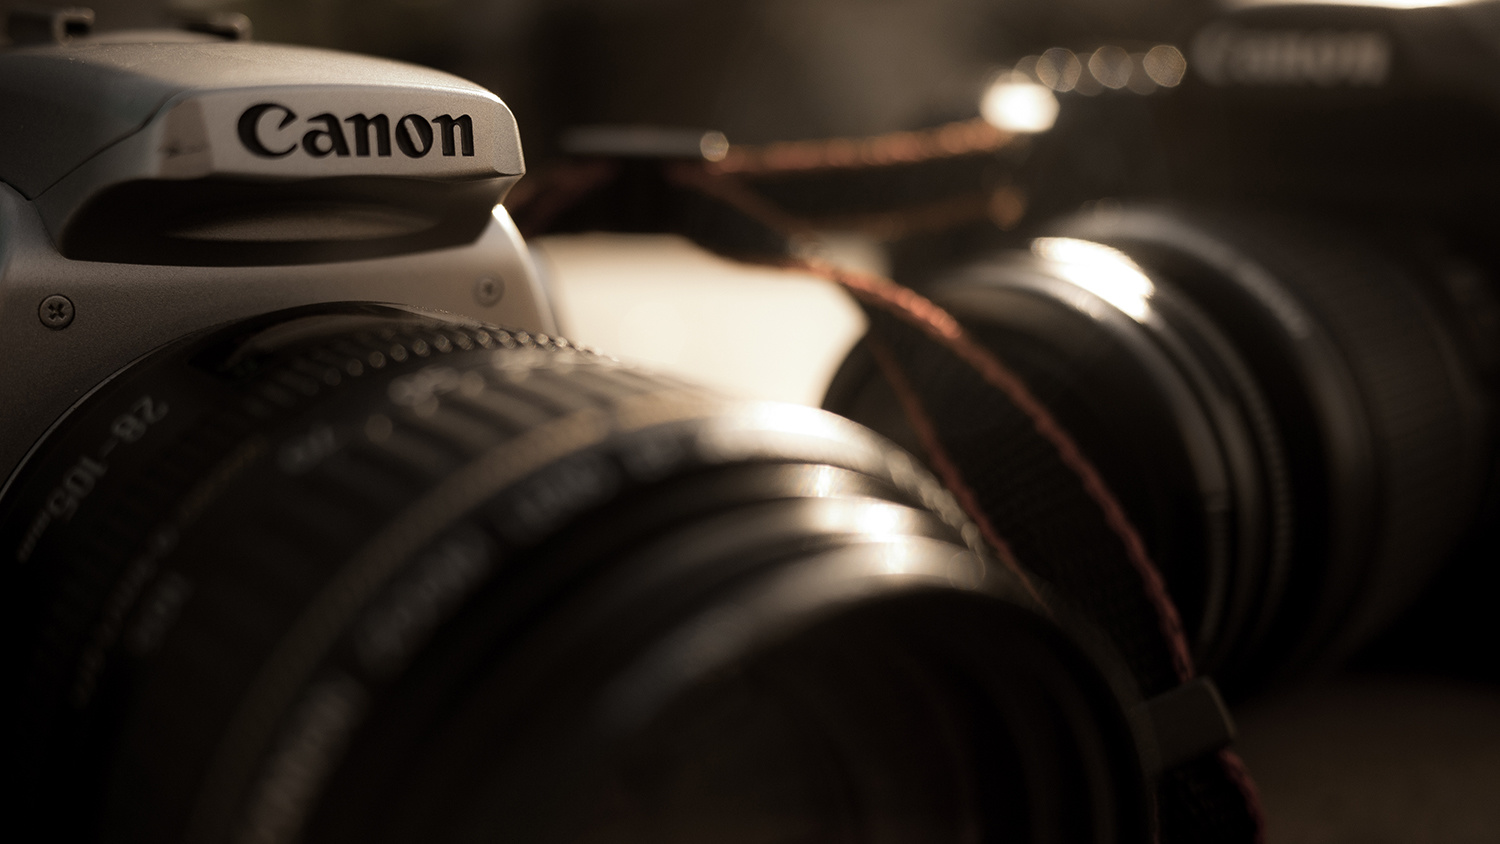 Mounting Confusion: Why Canon, Nikon's New Mirrorless Cameras Will